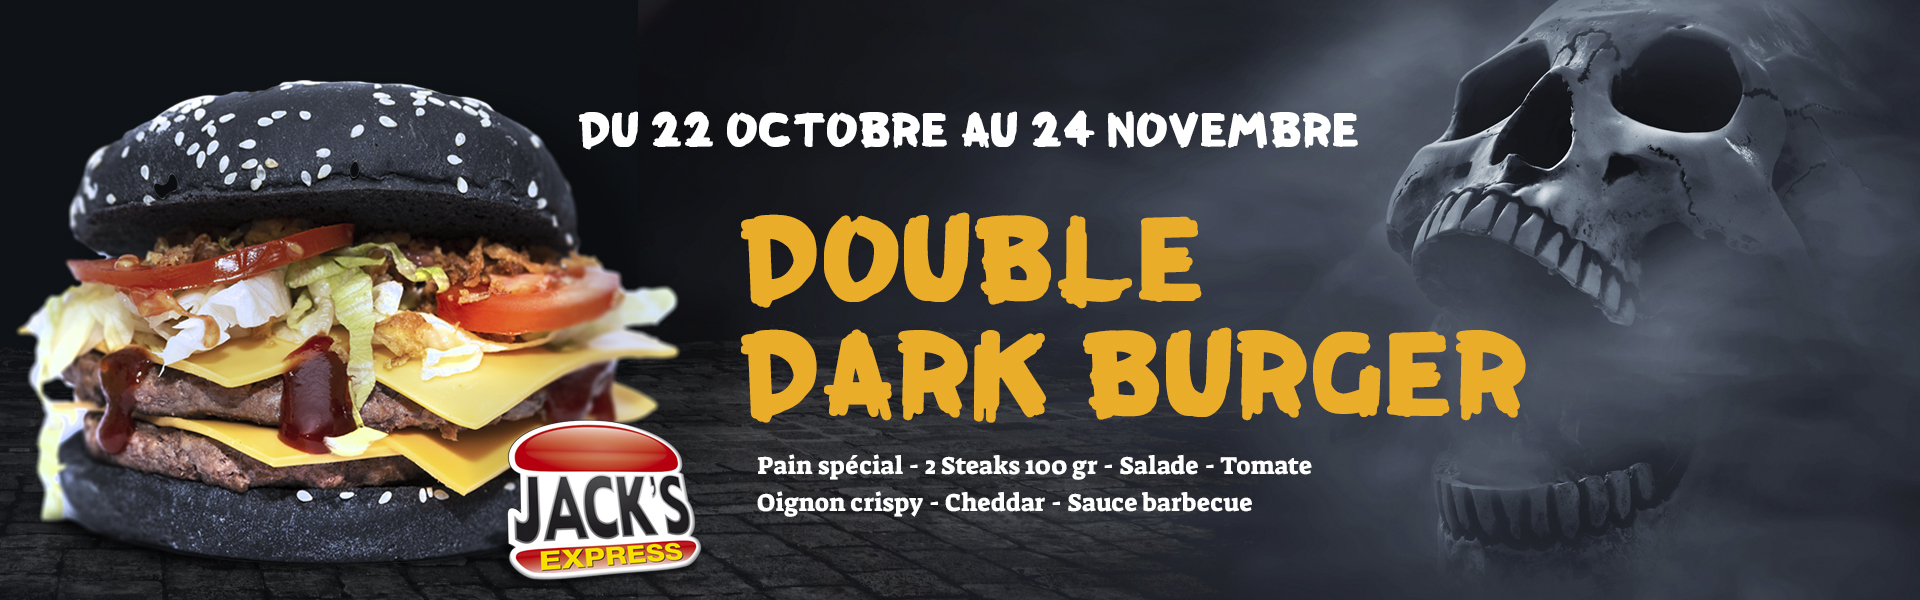 Double Dark burger au Jack's express de Castres